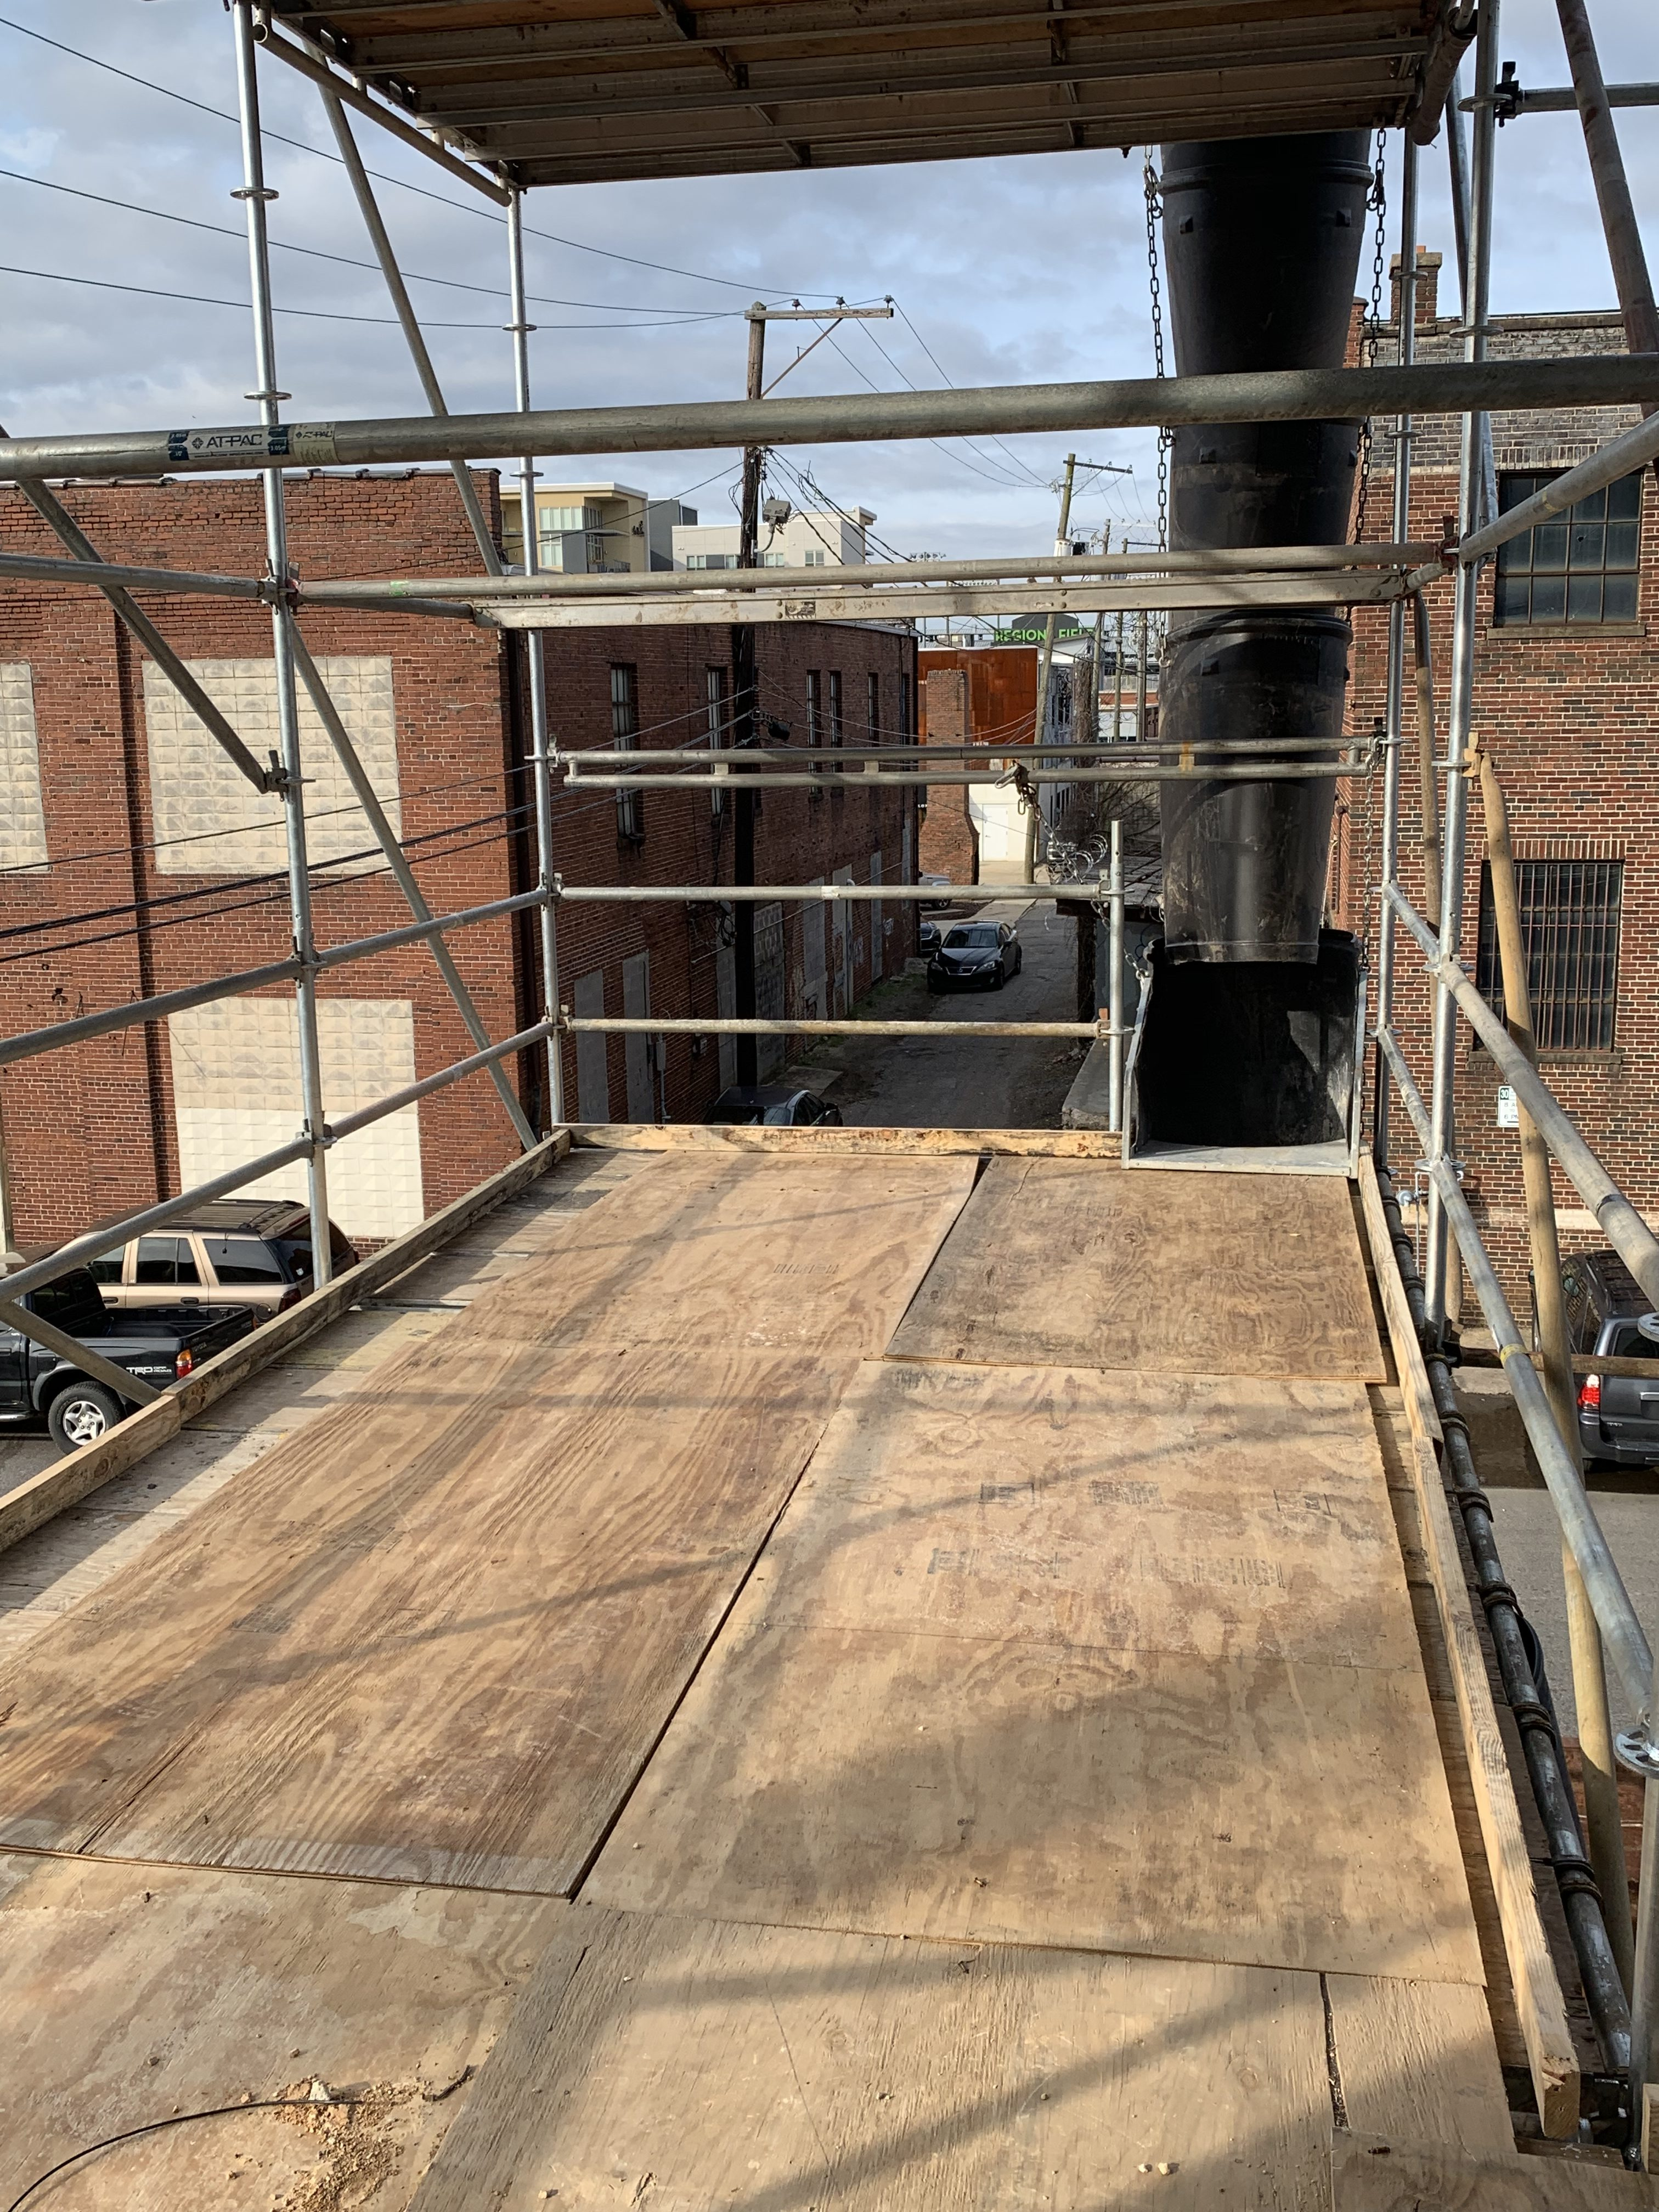 1st Ave S Condo Renovation scaffold 8